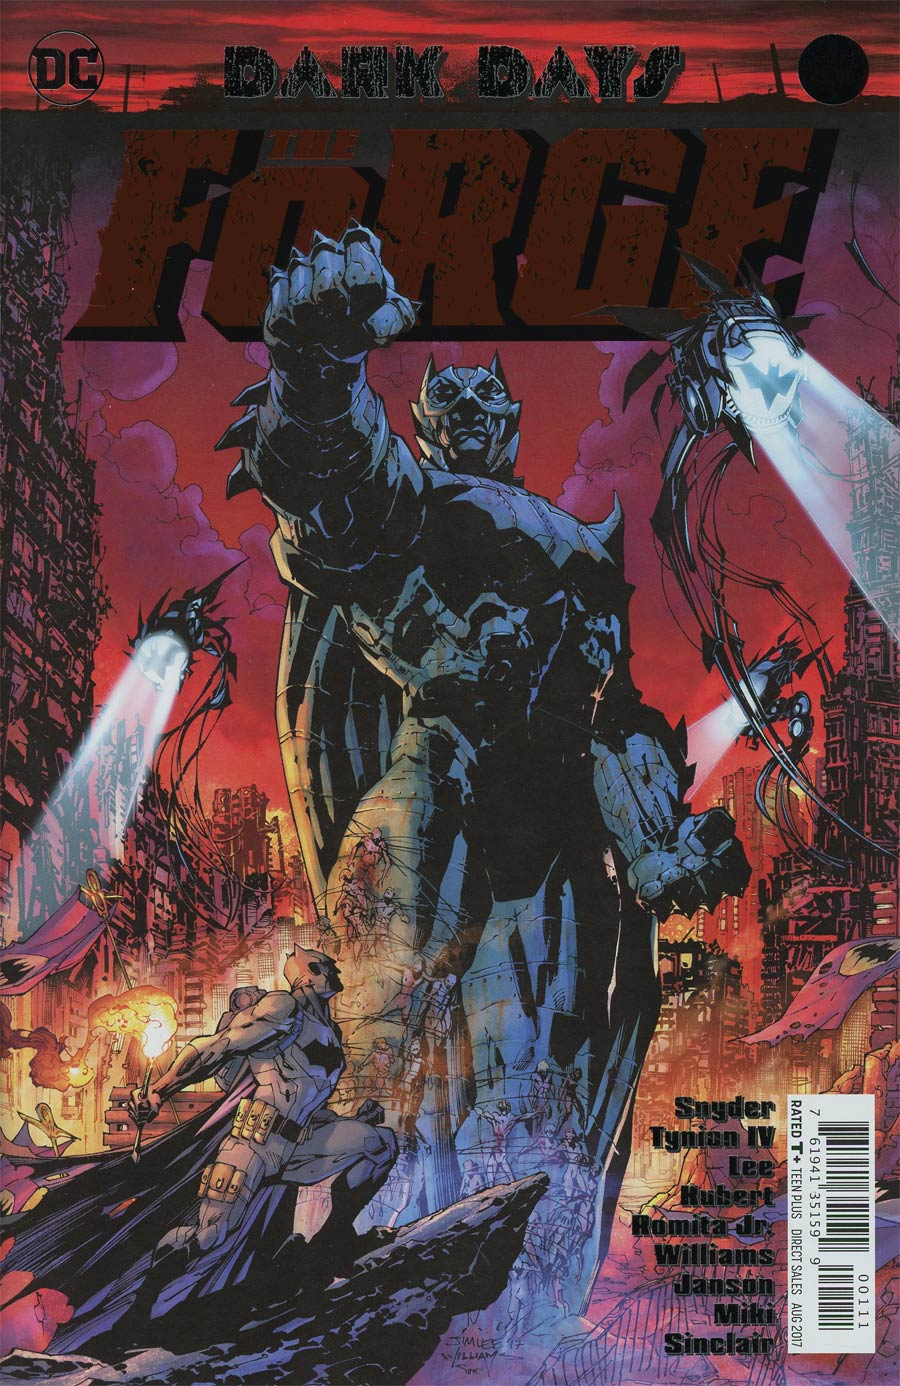 Dark Days The Forge #1 Cover A 1st Ptg Regular Jim Lee & Scott Williams Foil-Stamped Cover